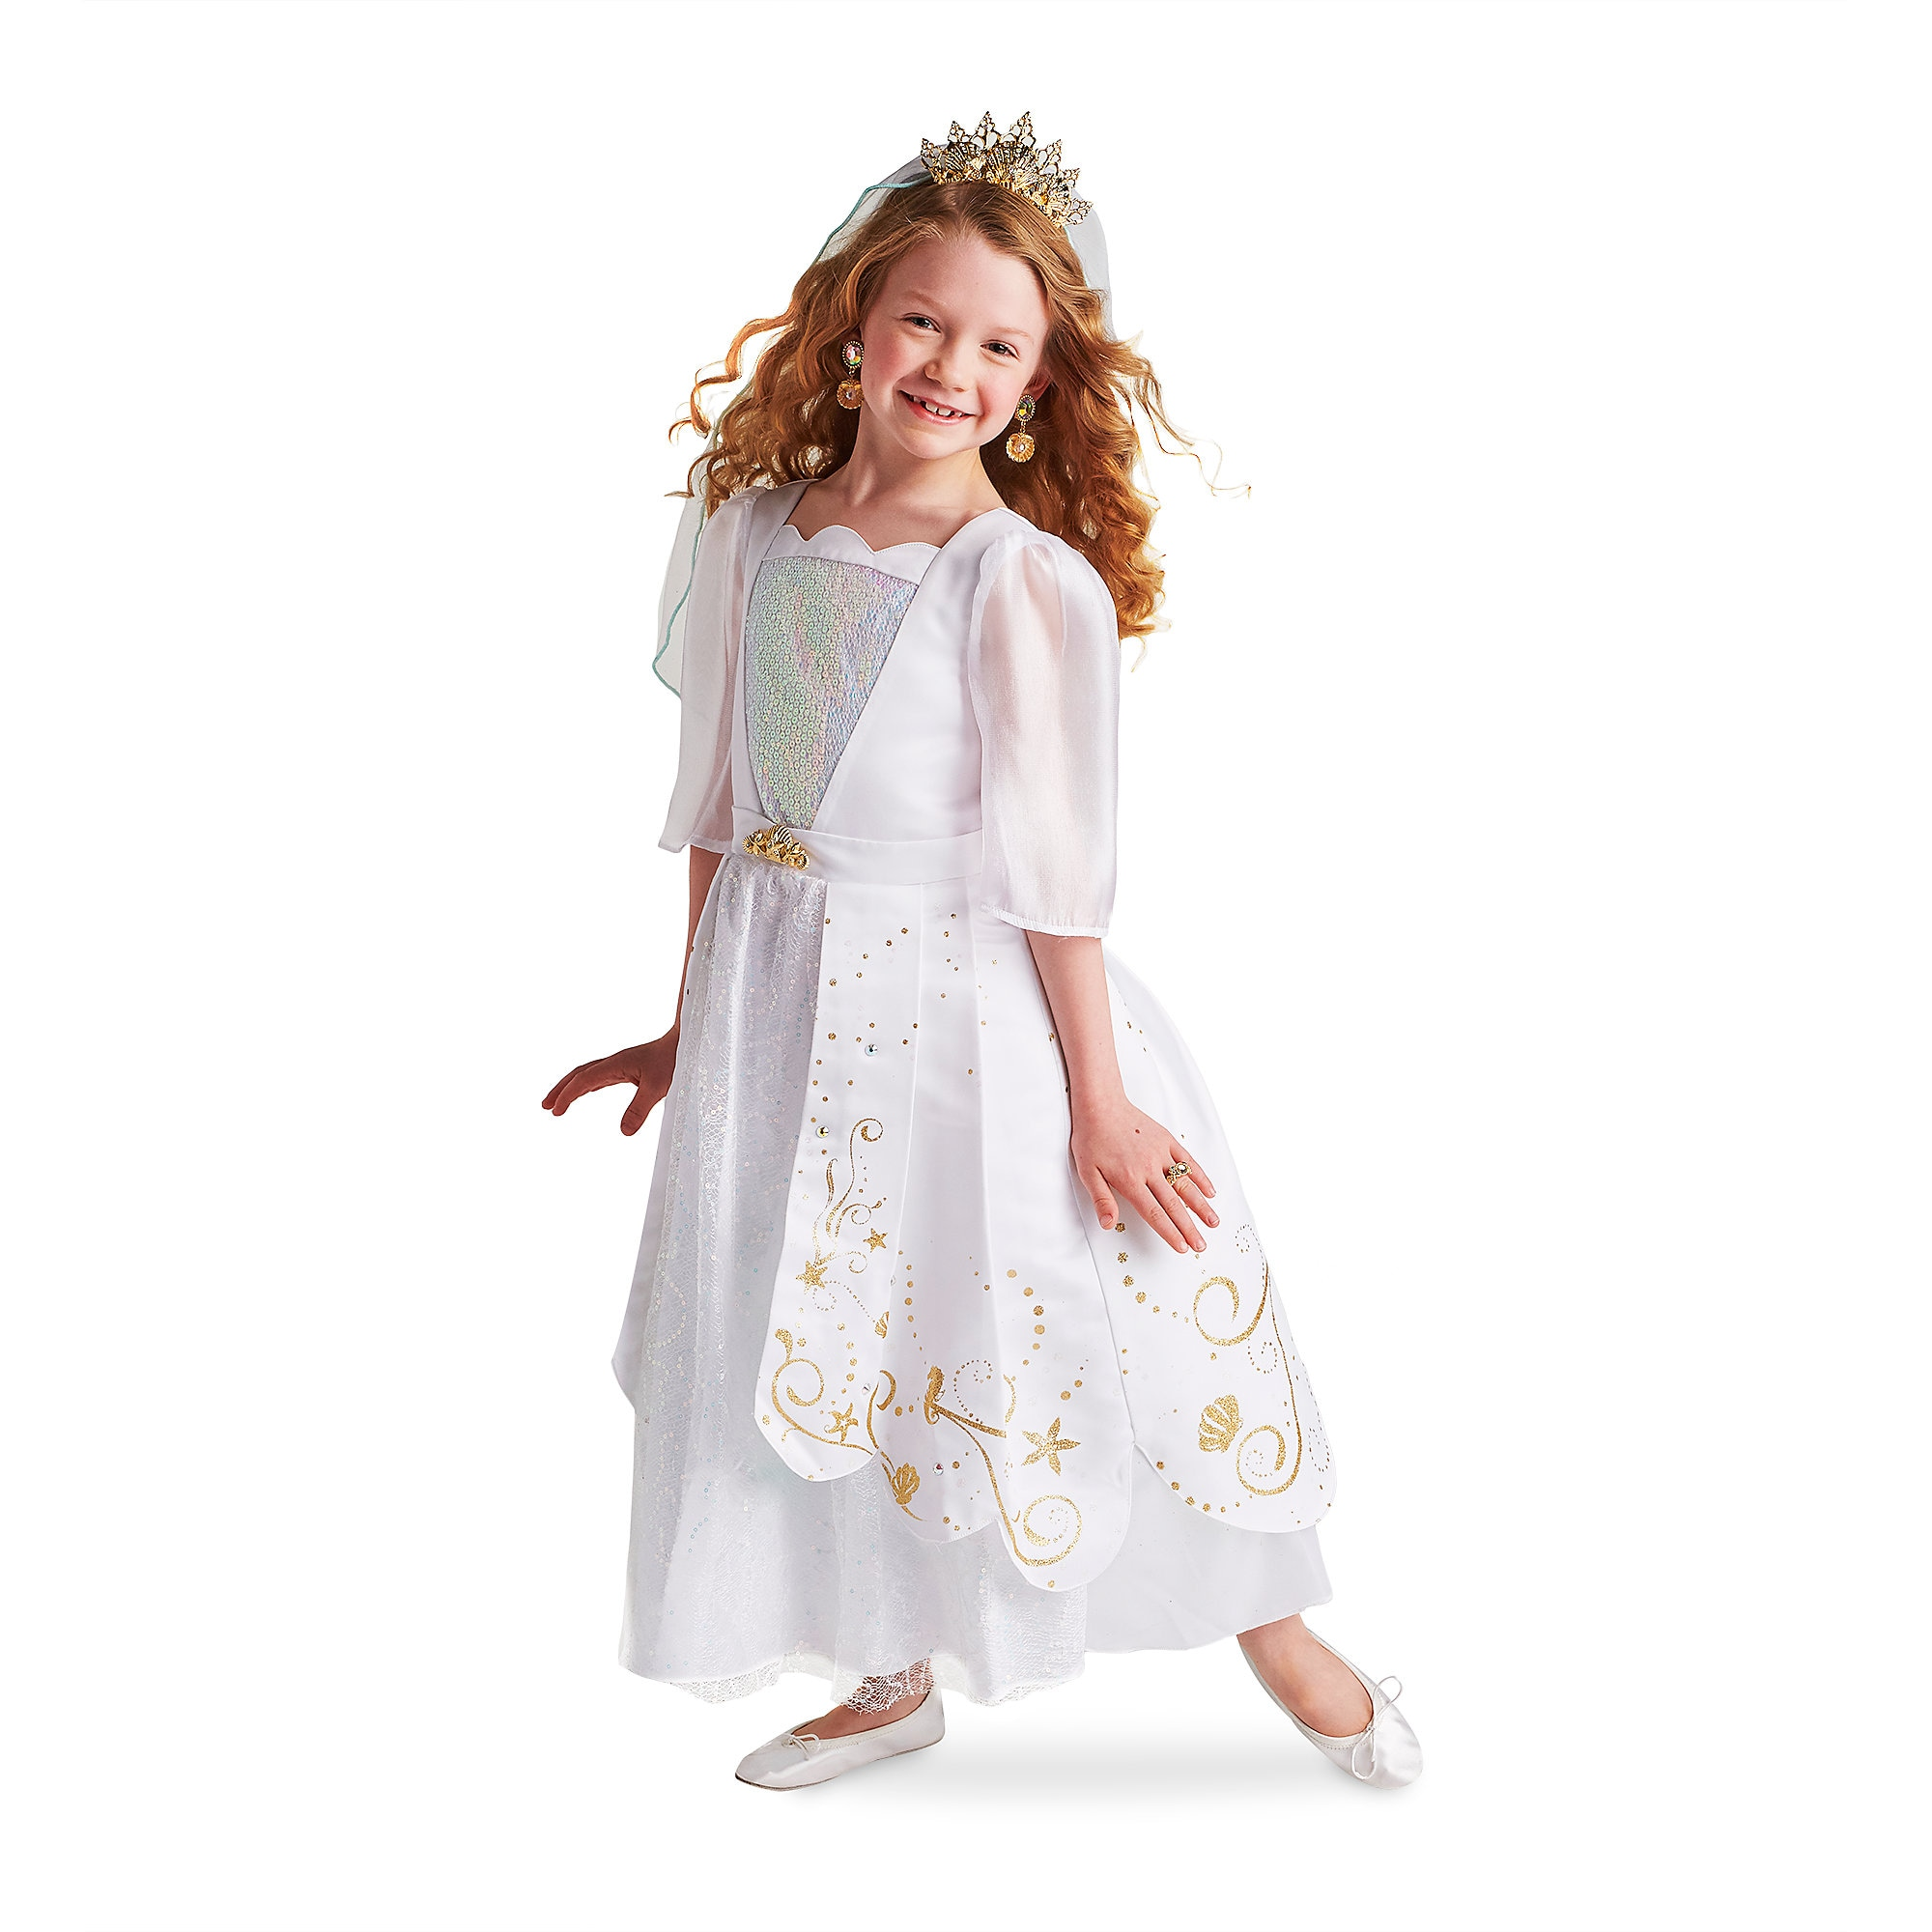 Ariel Deluxe Wedding Costume Collection for Kids